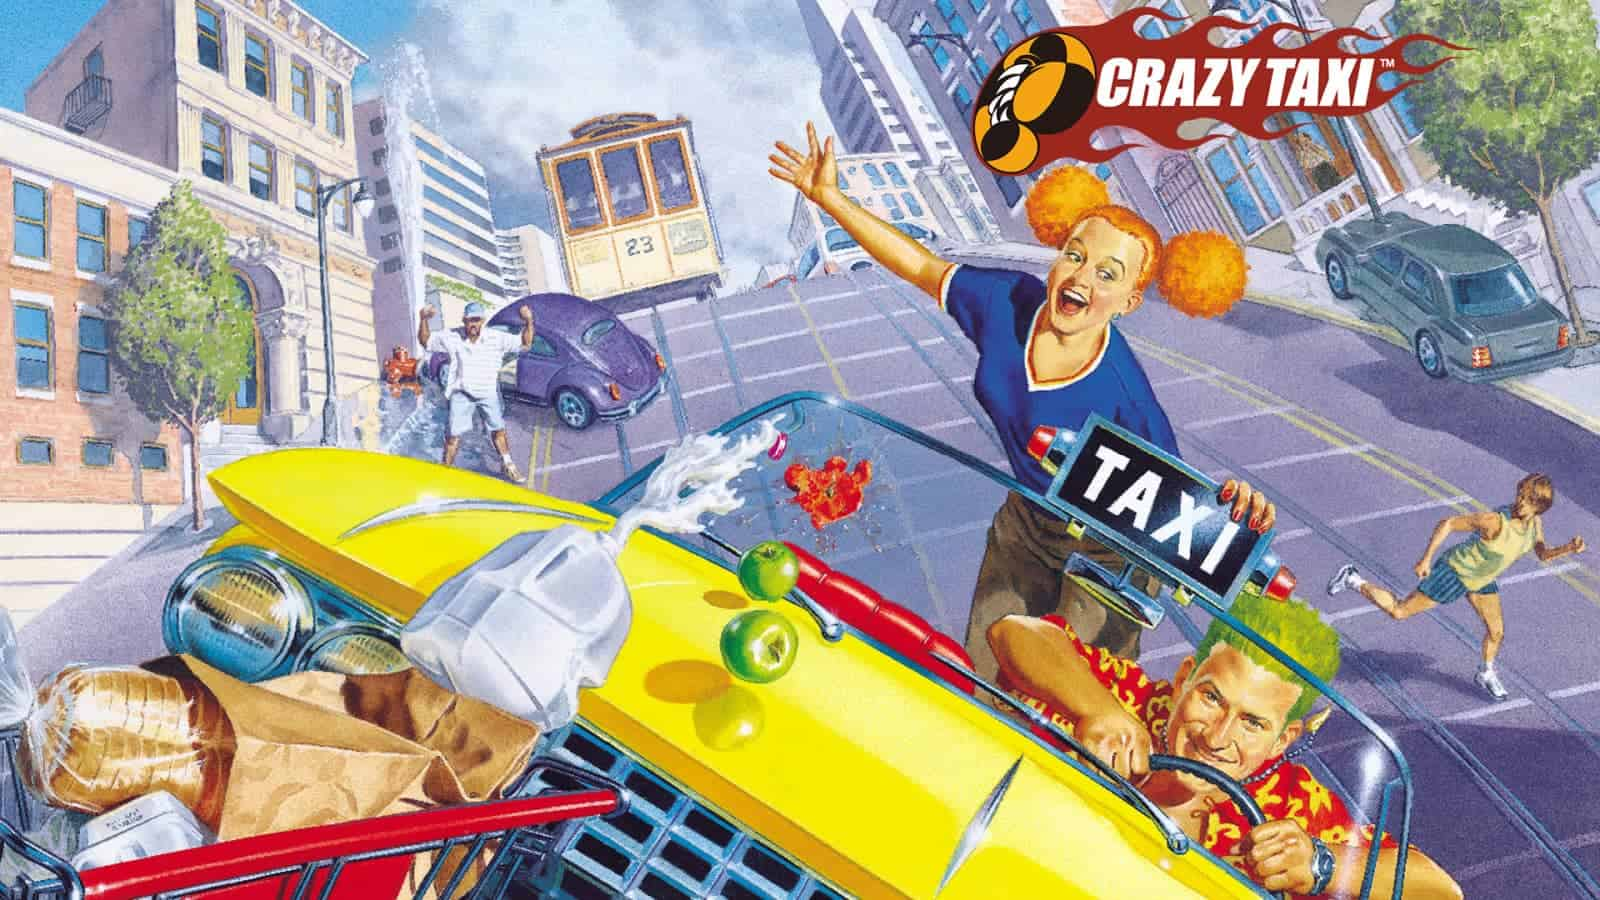 SEGA has a crazy idea to relaunch the crazy taxi franchise